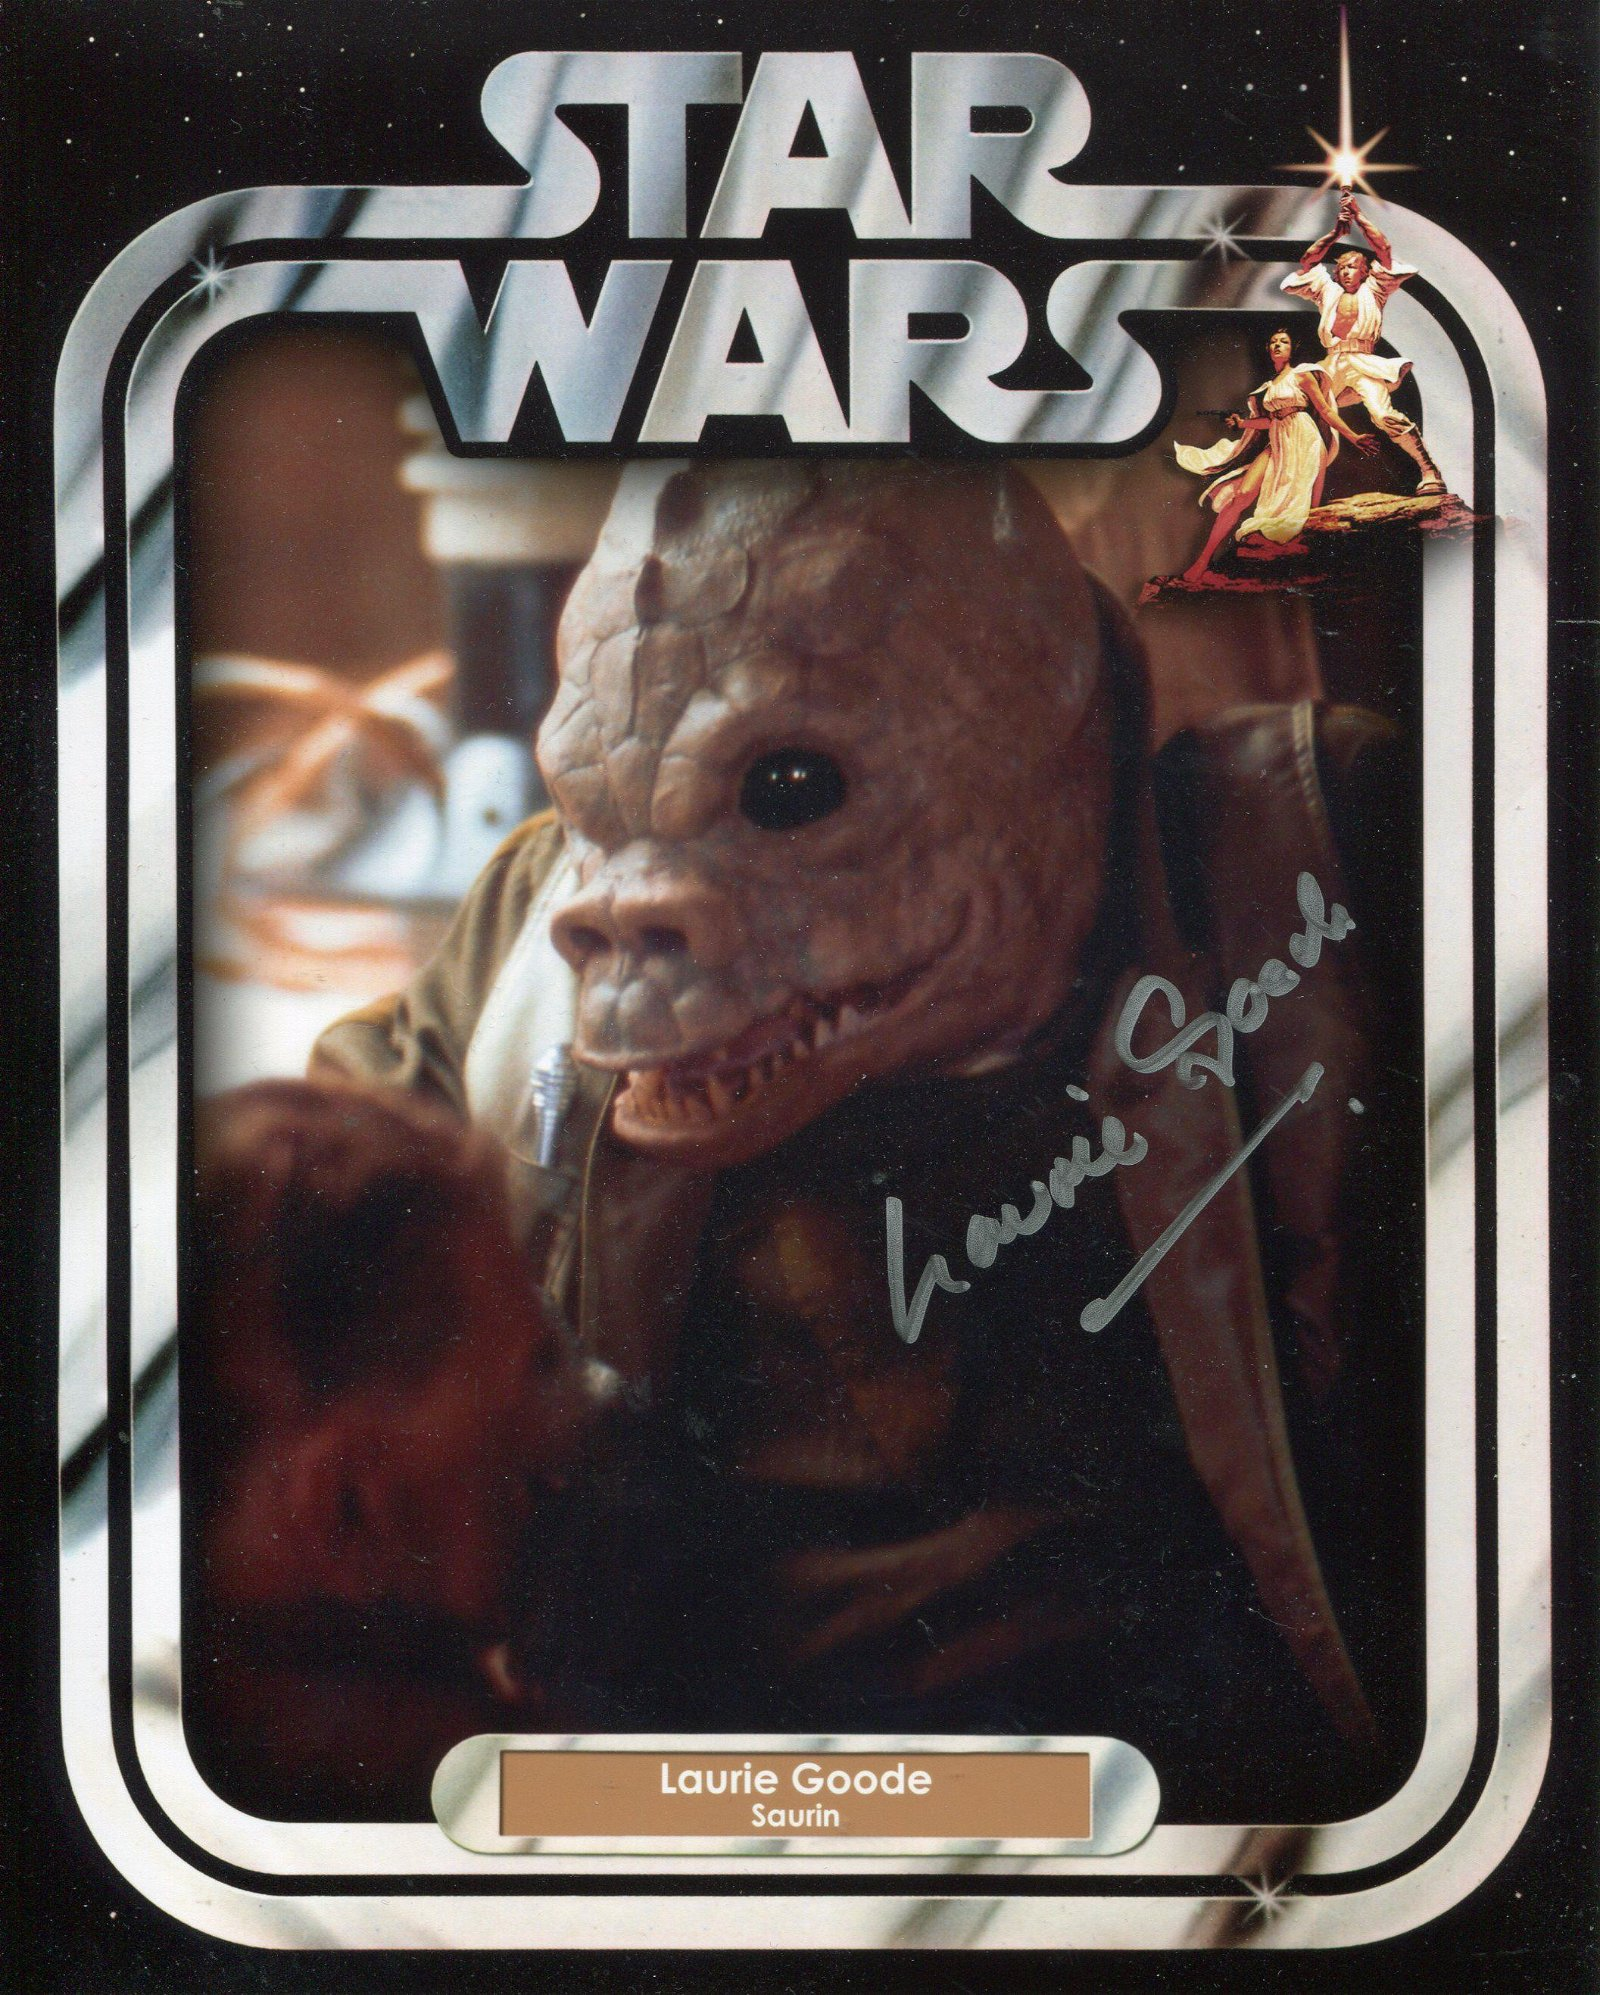 Star Wars. 8x10 photo signed by actor Laurie Goode as